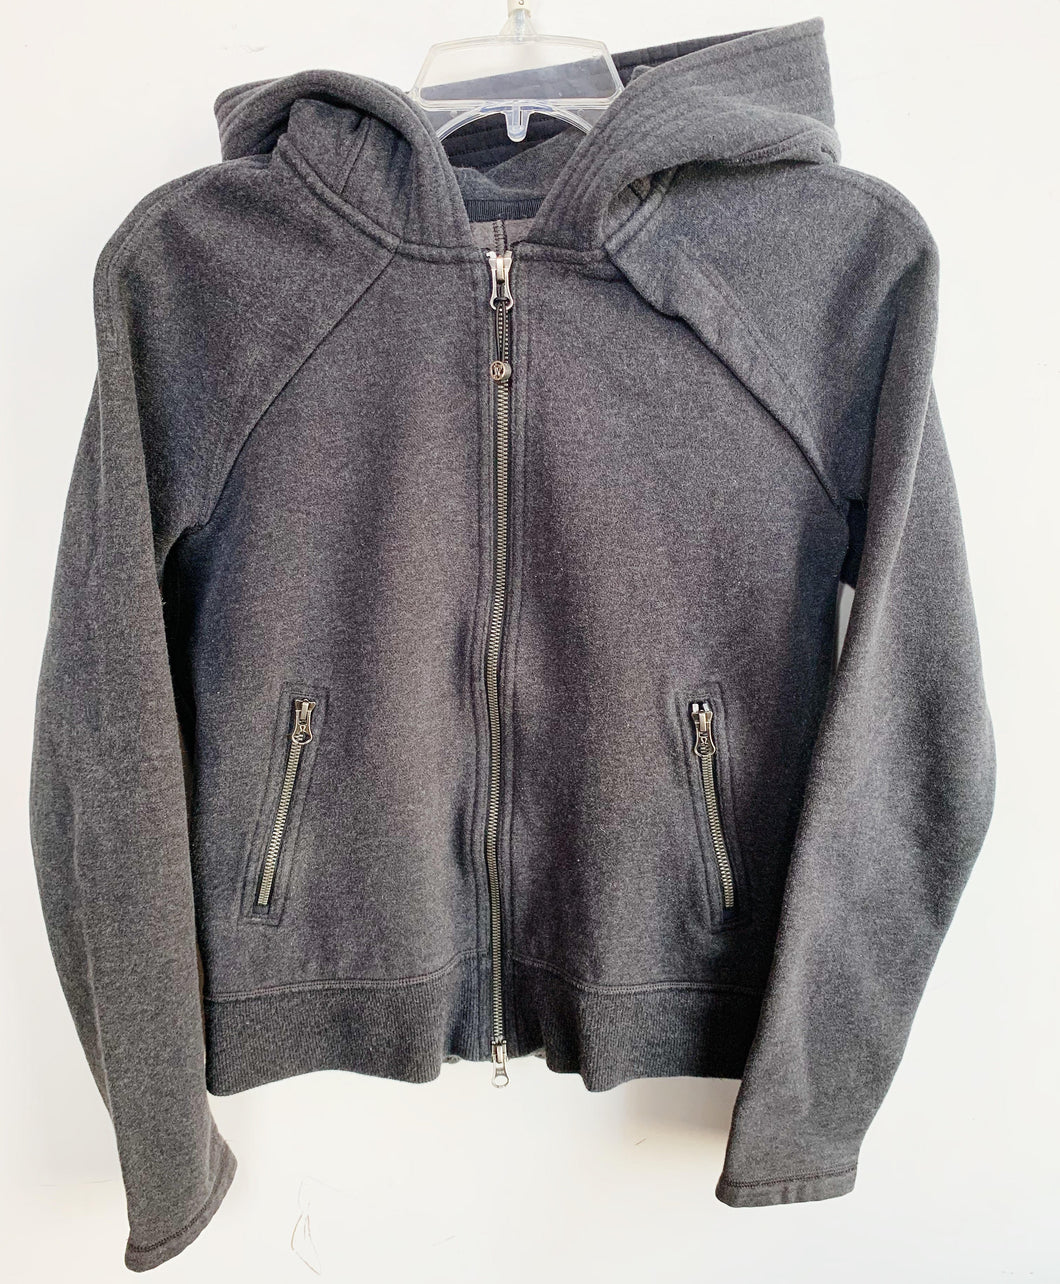 Lululemon Dark Grey Zip Up Hoodie Size S